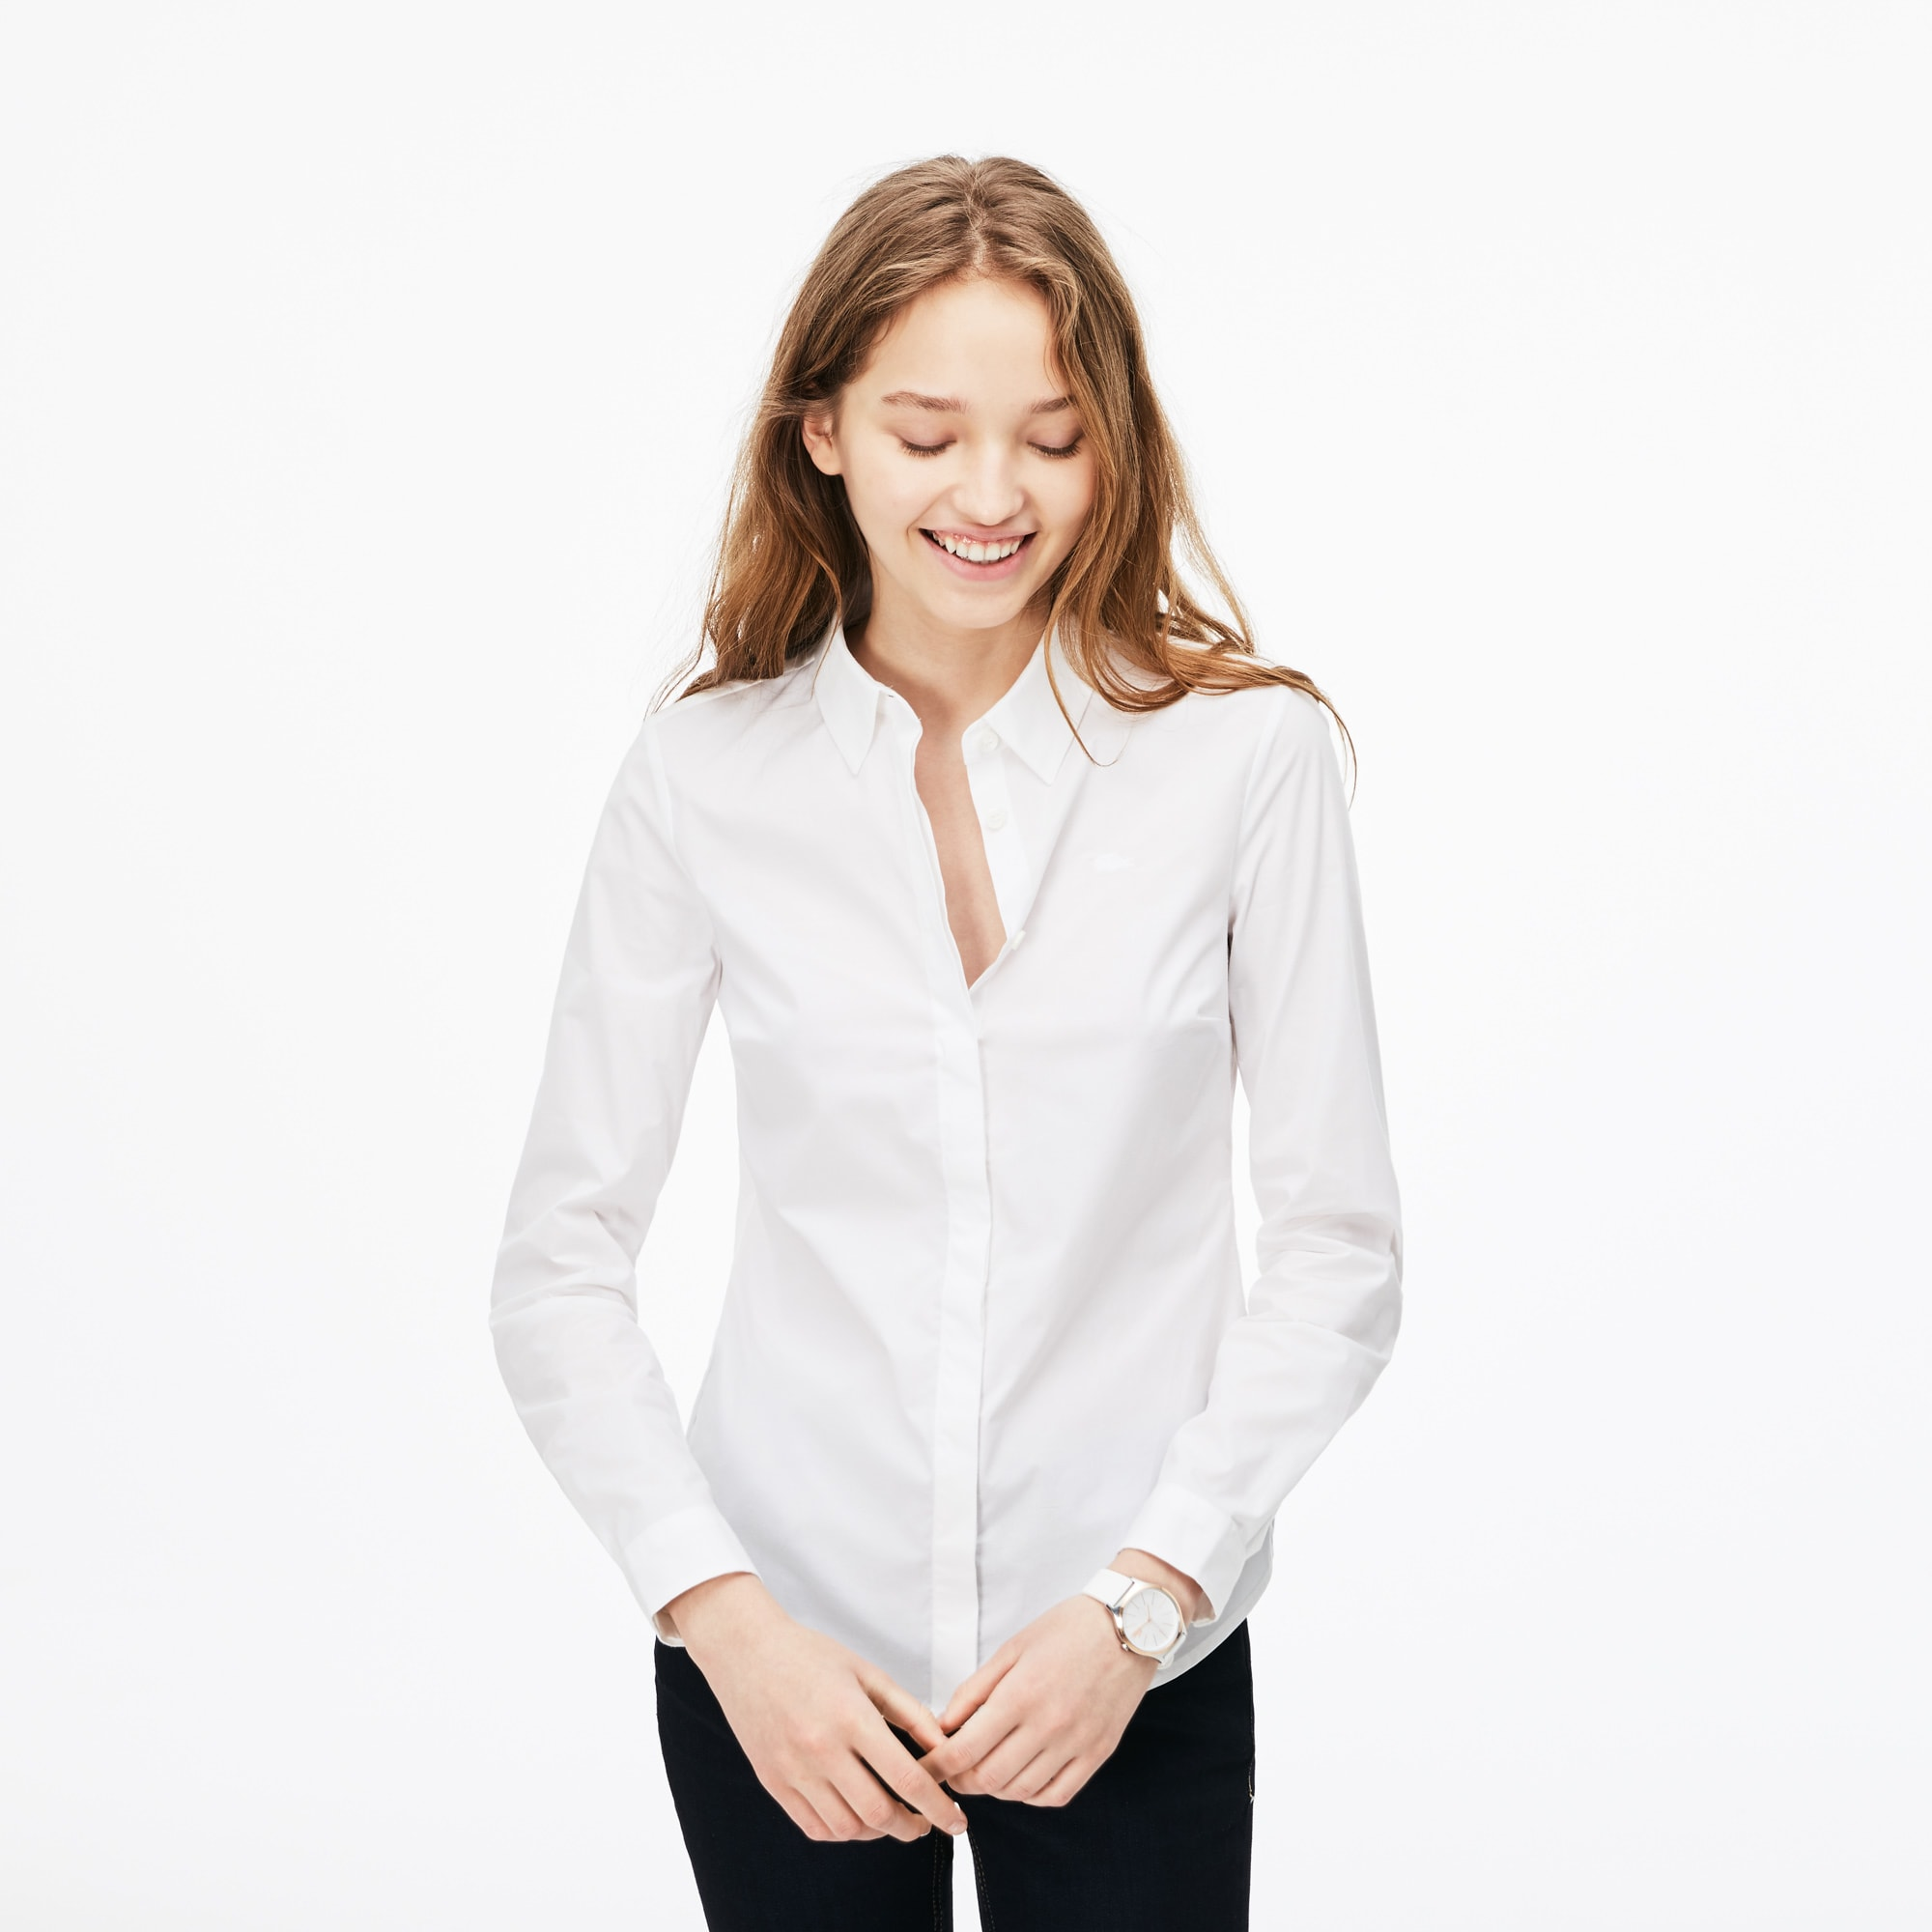 Women's Slim Fit Stretch Cotton Poplin Shirt